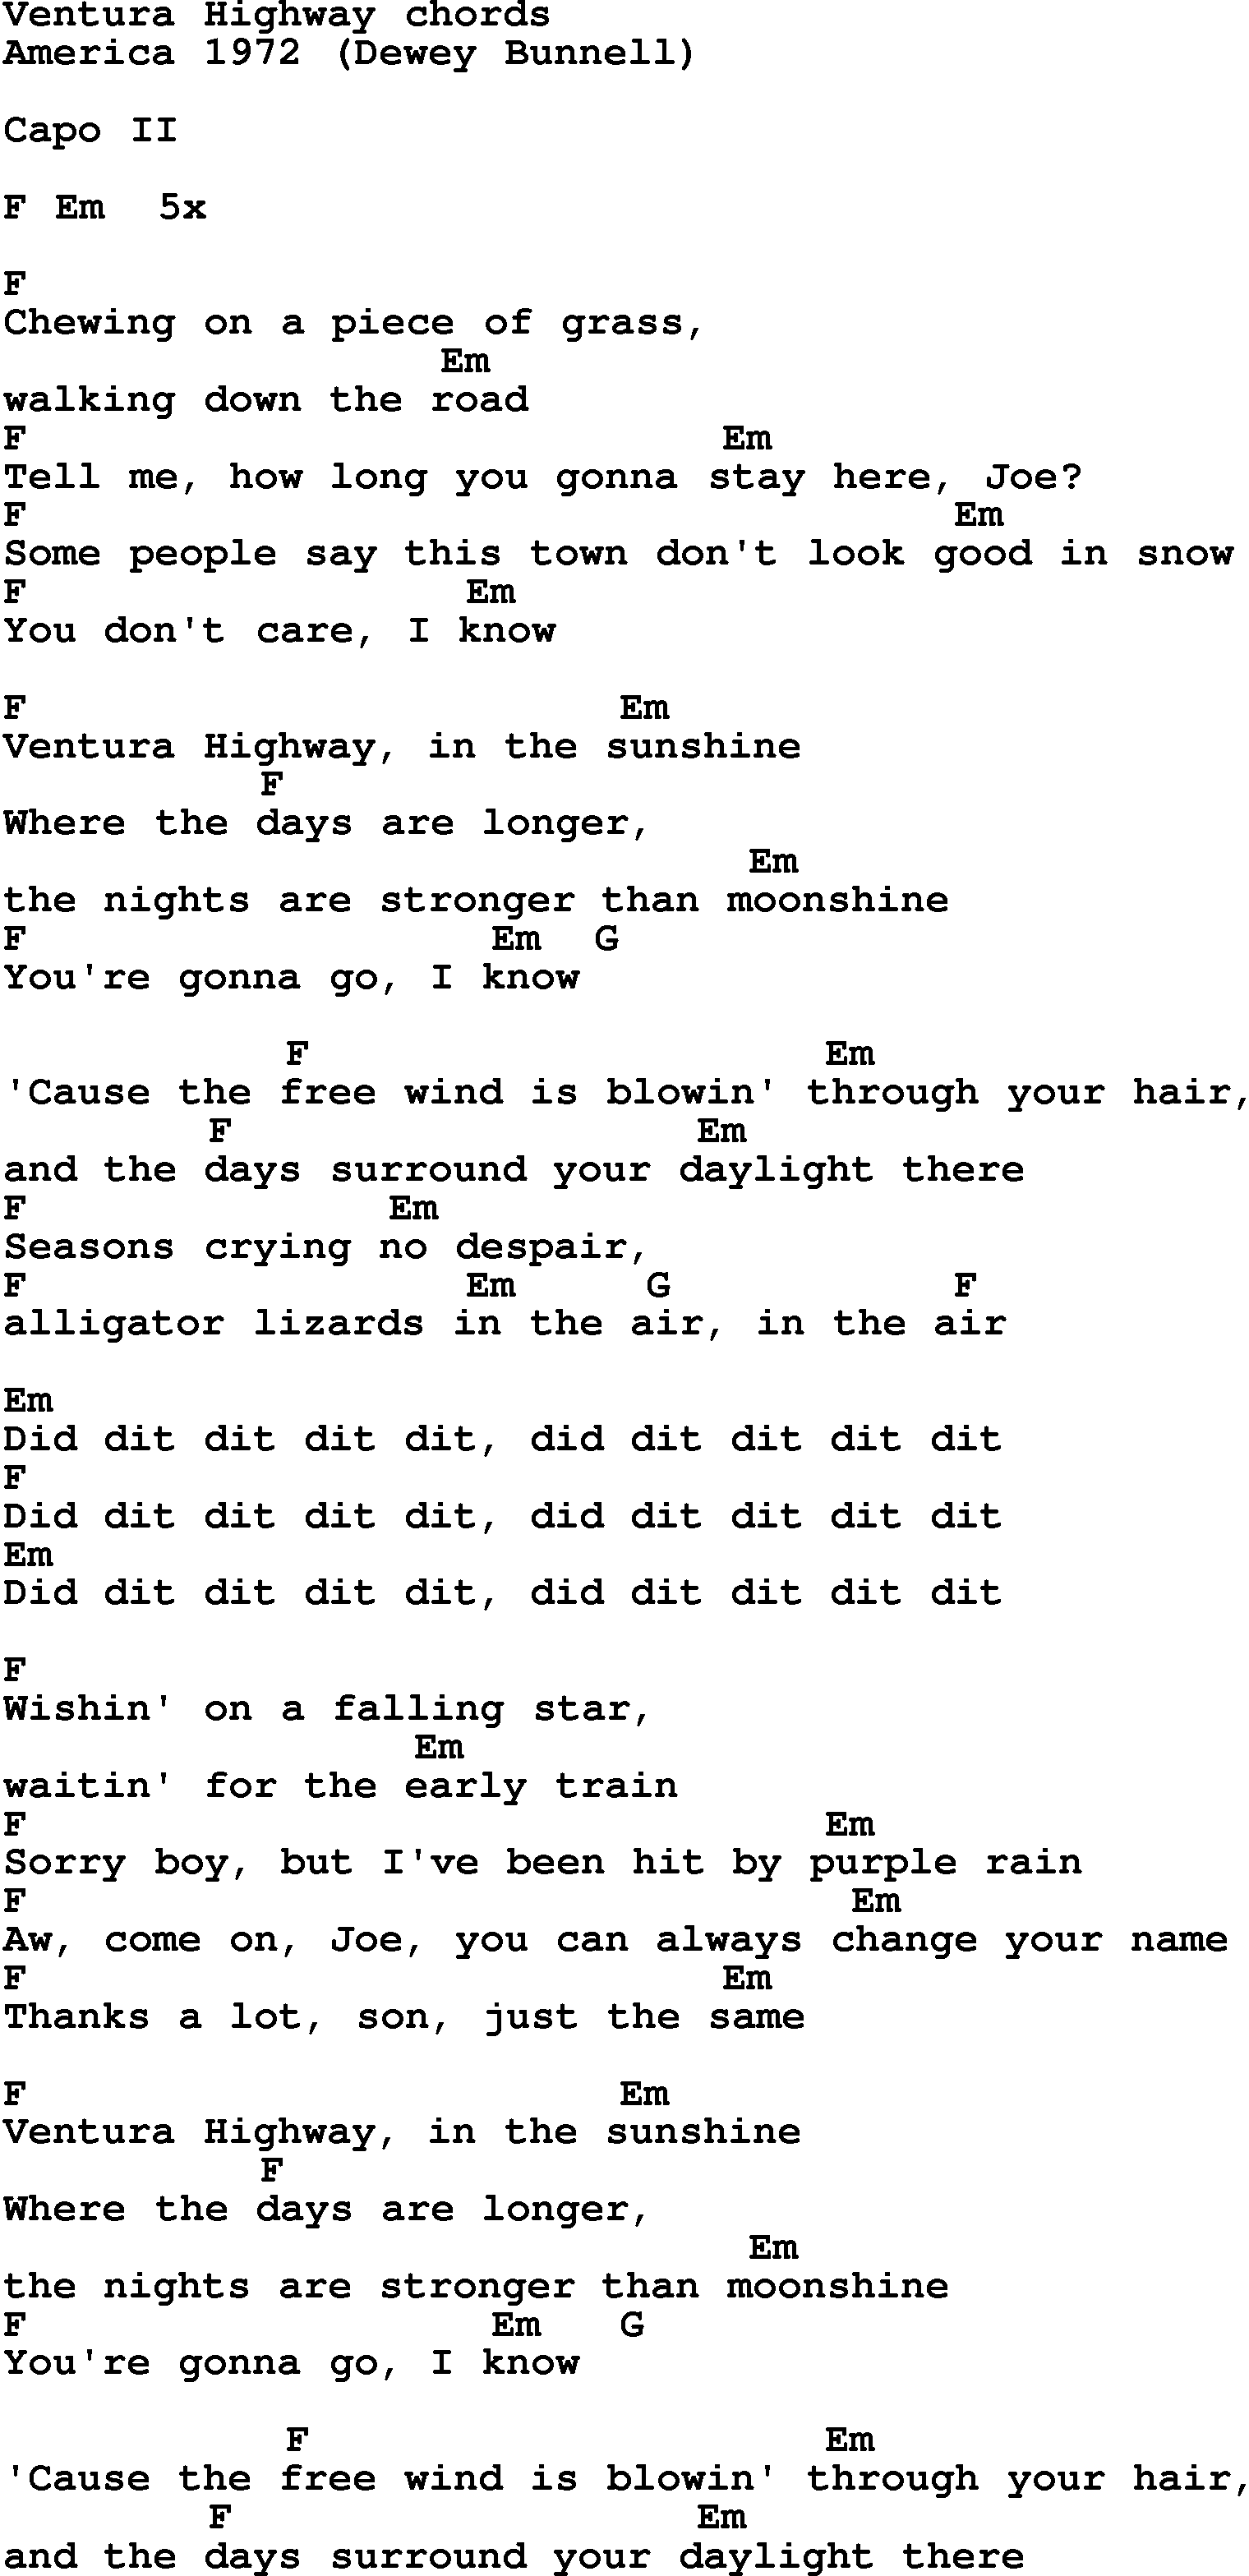 Song Lyrics With Guitar Chords For Ventura Highway